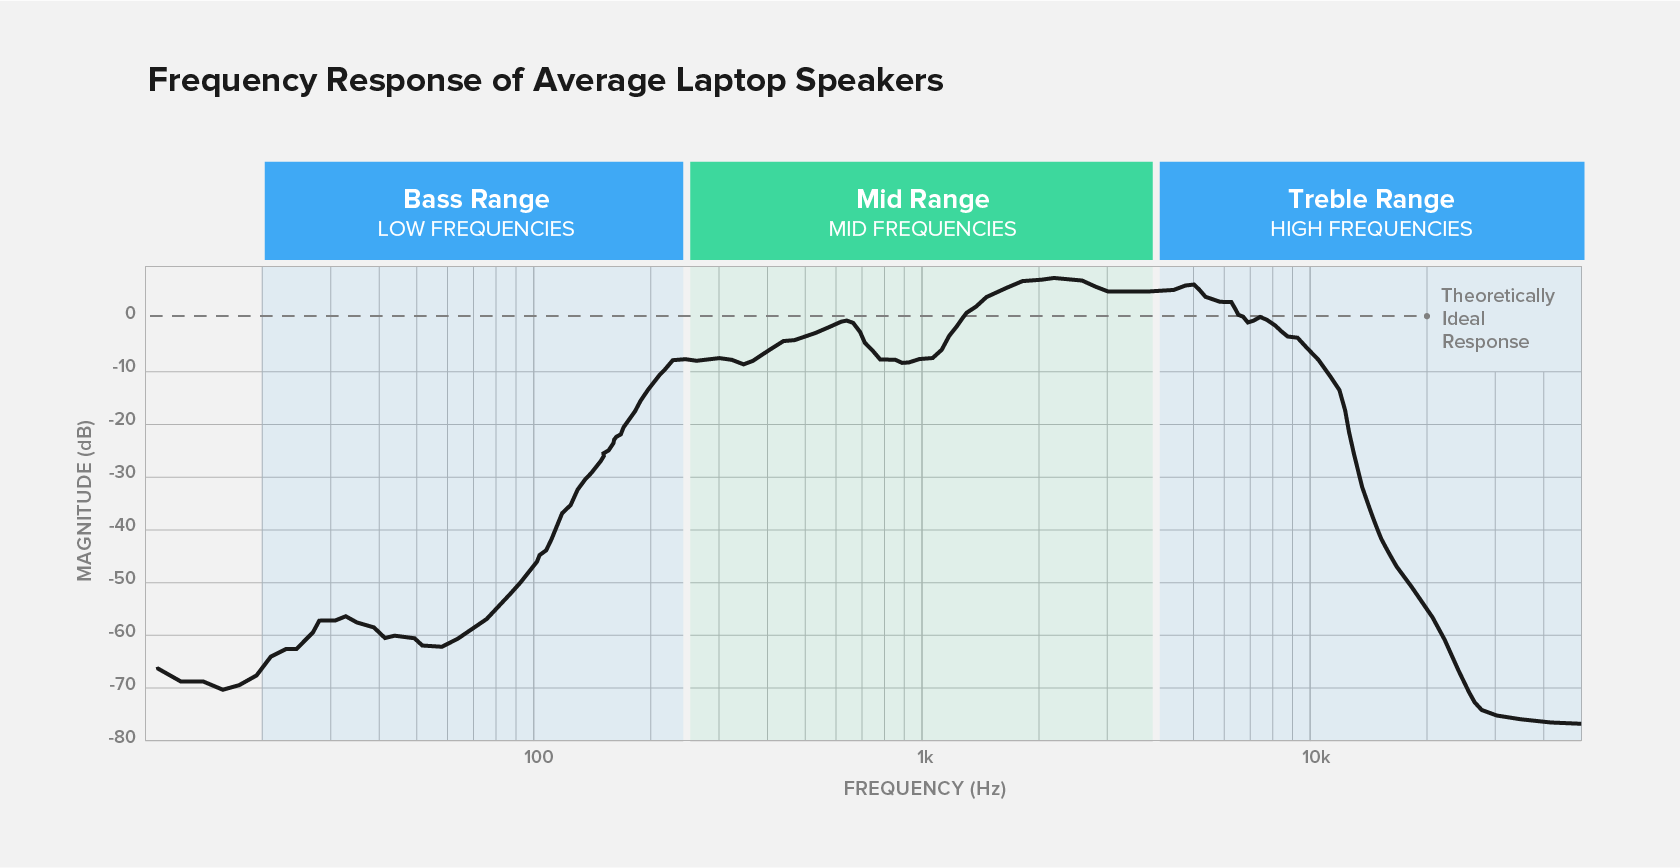 Typical laptop frequency response shows low, mid, and high frequencies.